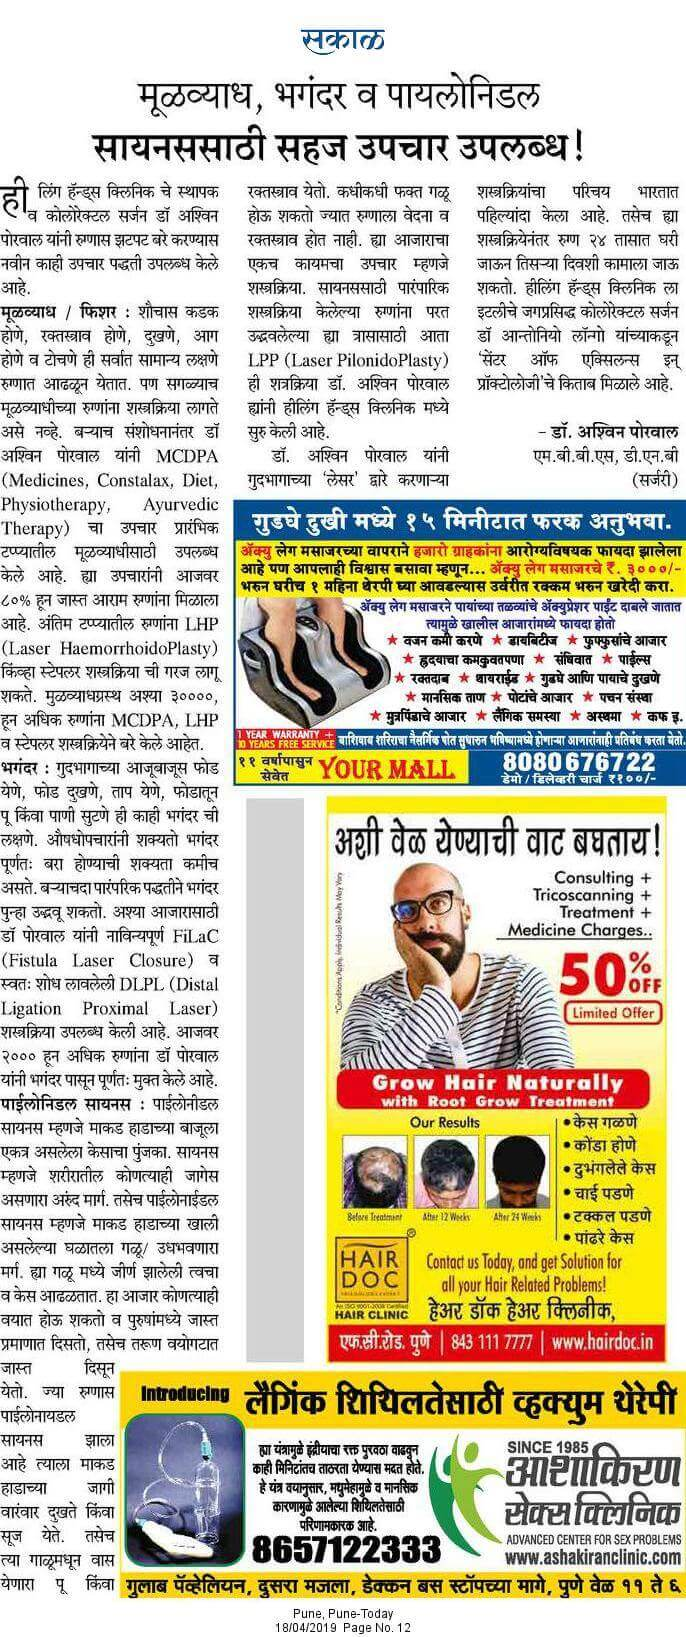 Sakal Marathi Article April 2019 Newspaper